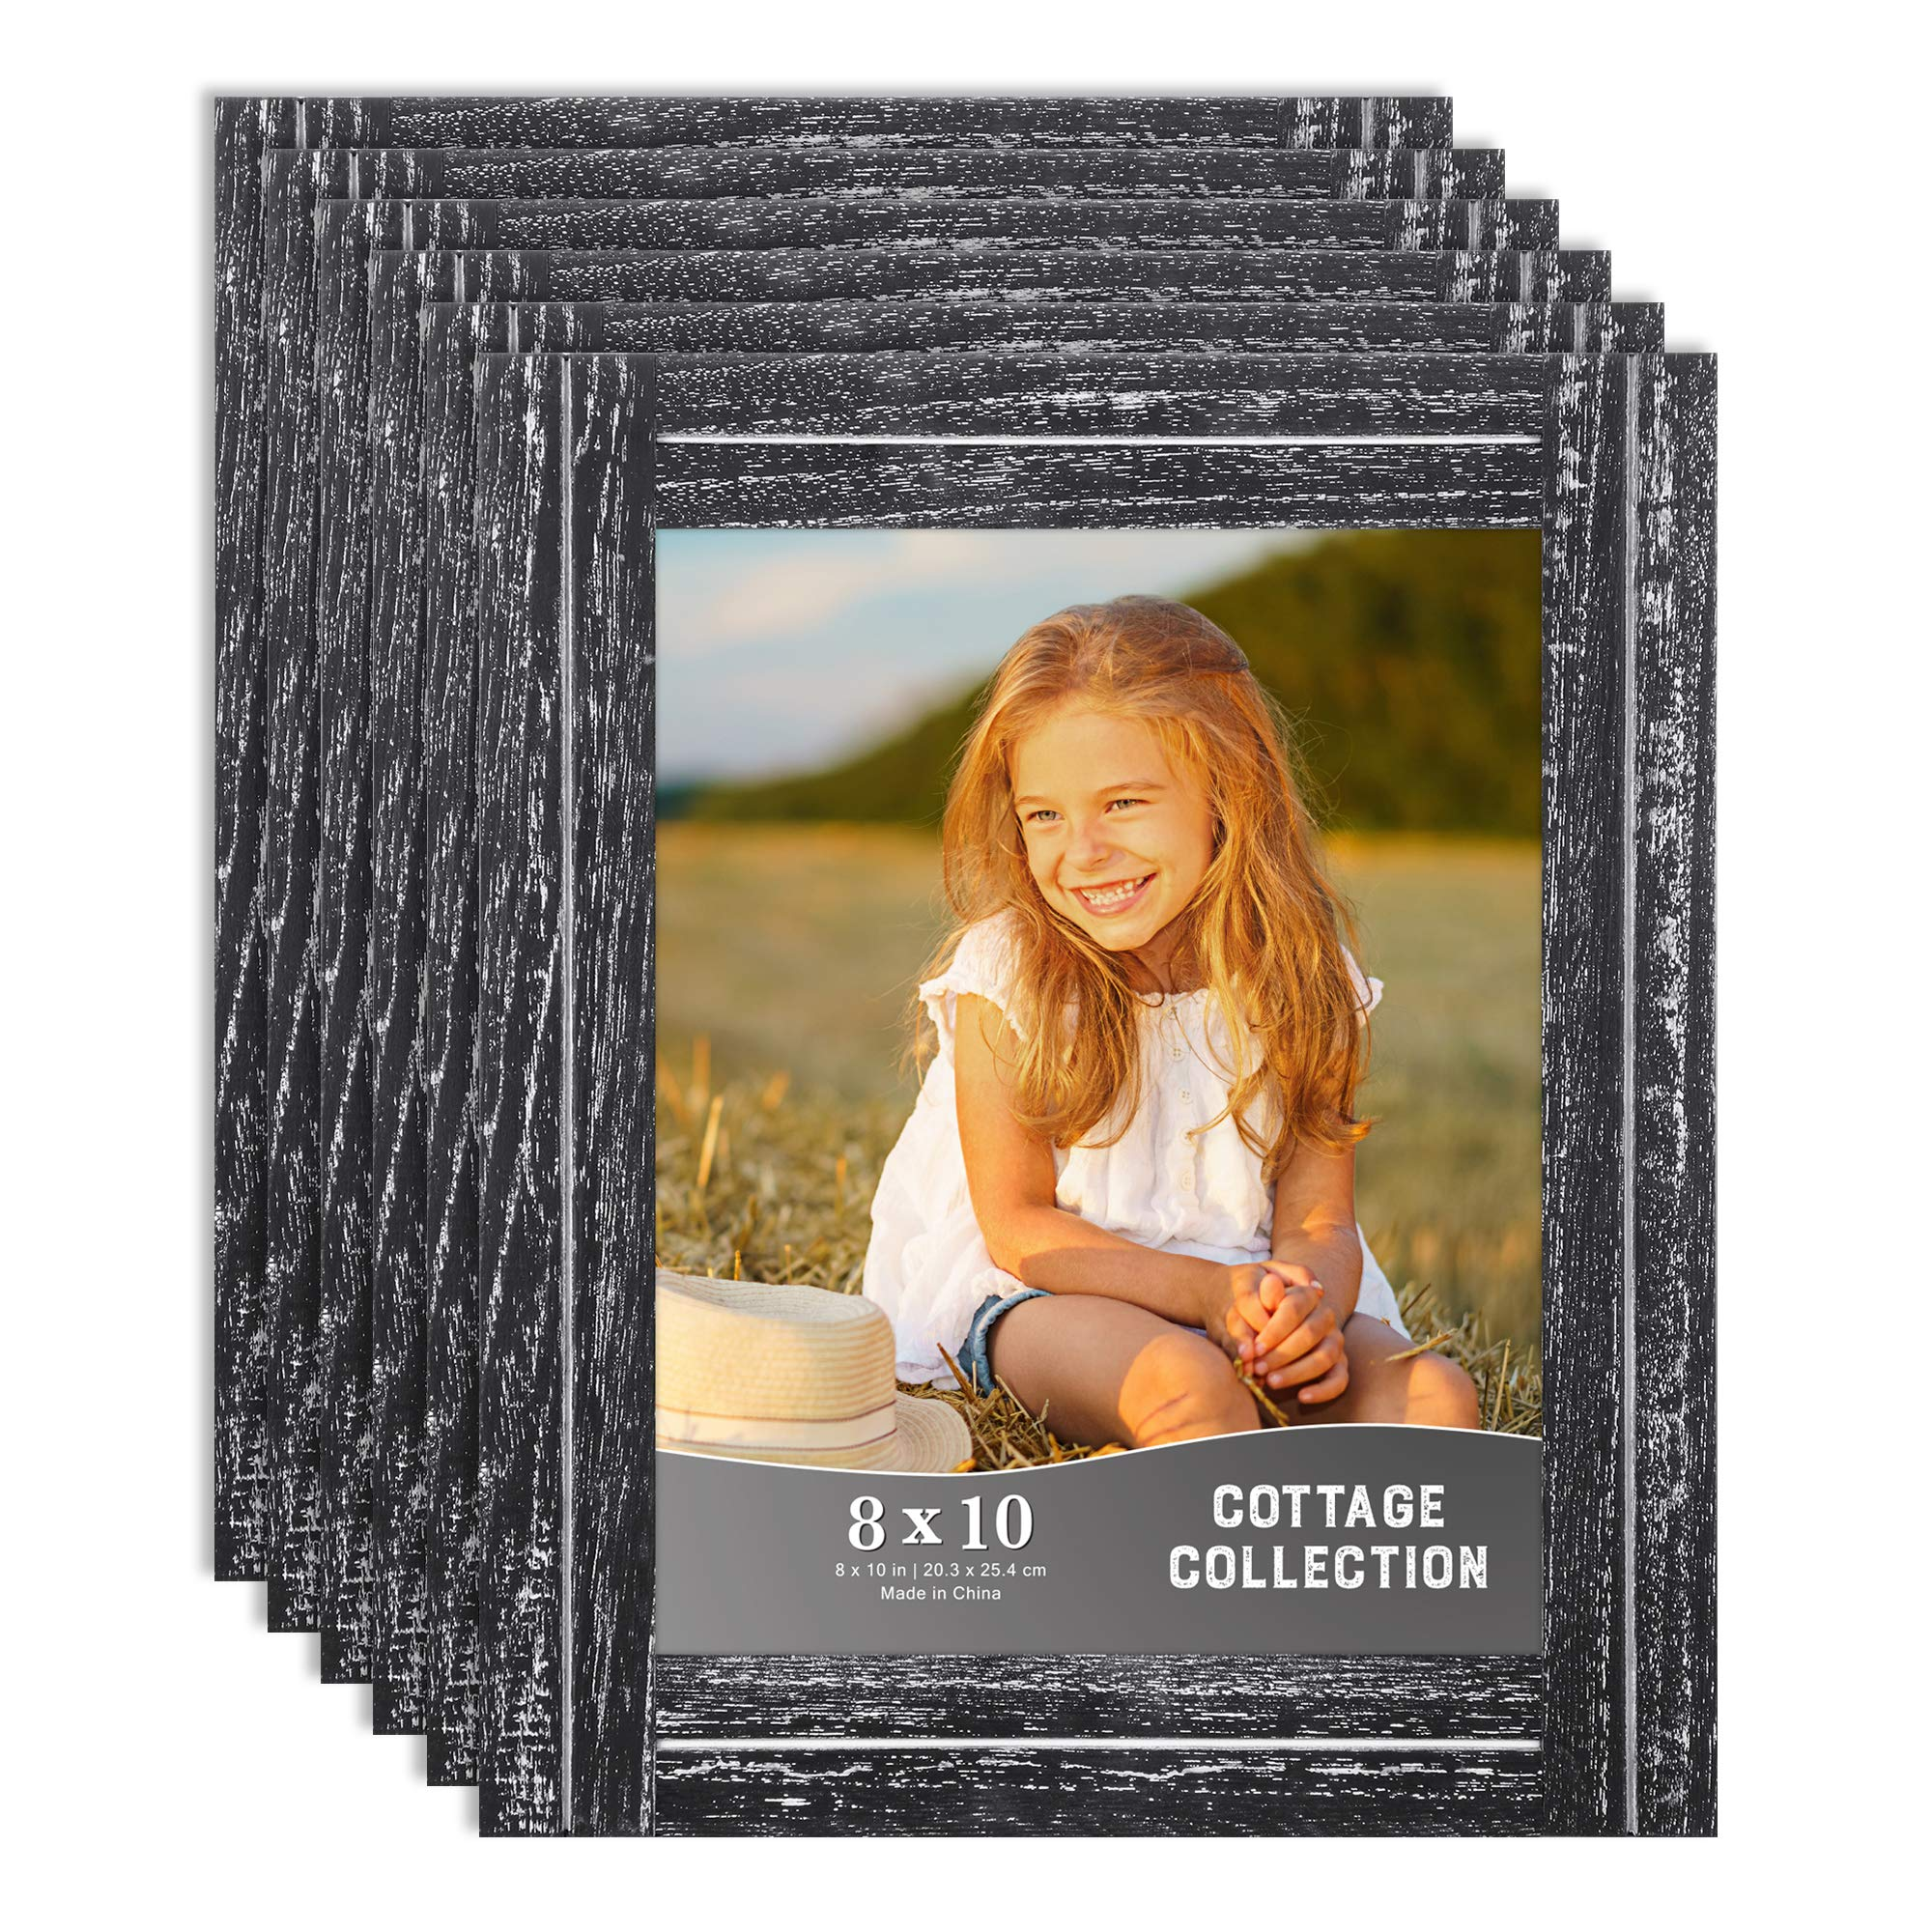 Icona Bay 8x10 Picture Frames, Rustic Picture Frame Set, Natural Real Wood Frames, Set of 6 Cottage Collection (6 Pack, Basalt Black) by Icona Bay